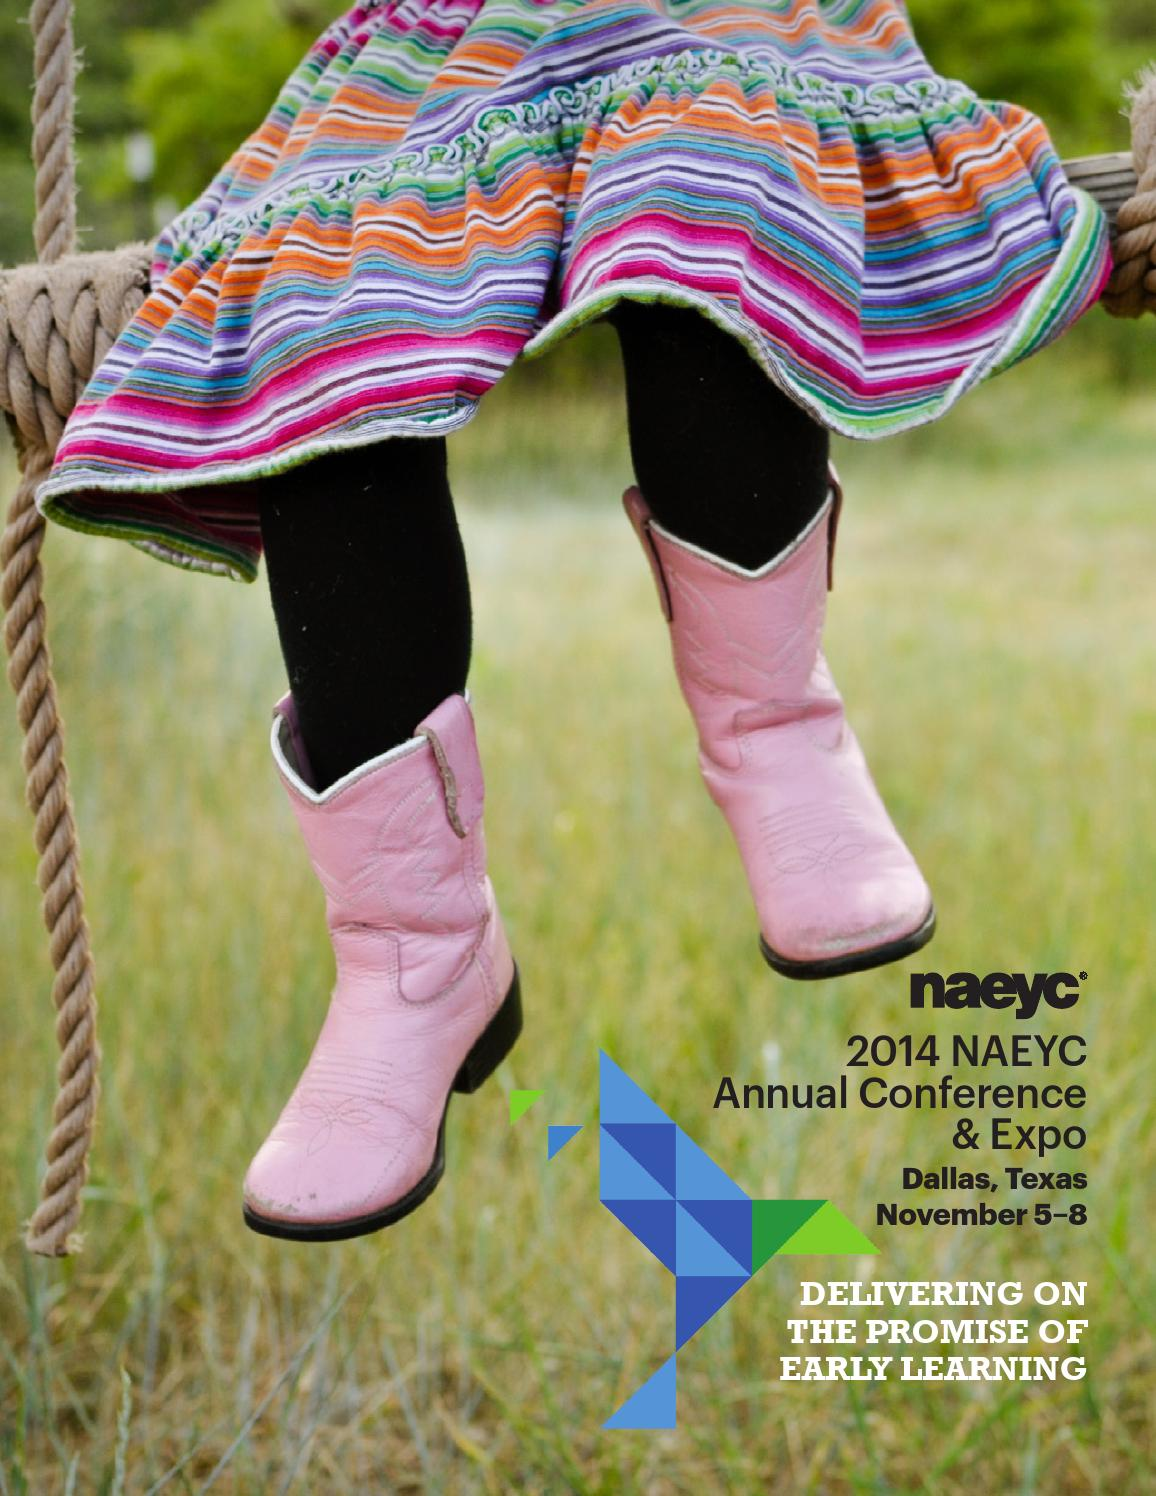 699b982db5 2014 Annual Conference   Expo Final Program by NAEYC - issuu